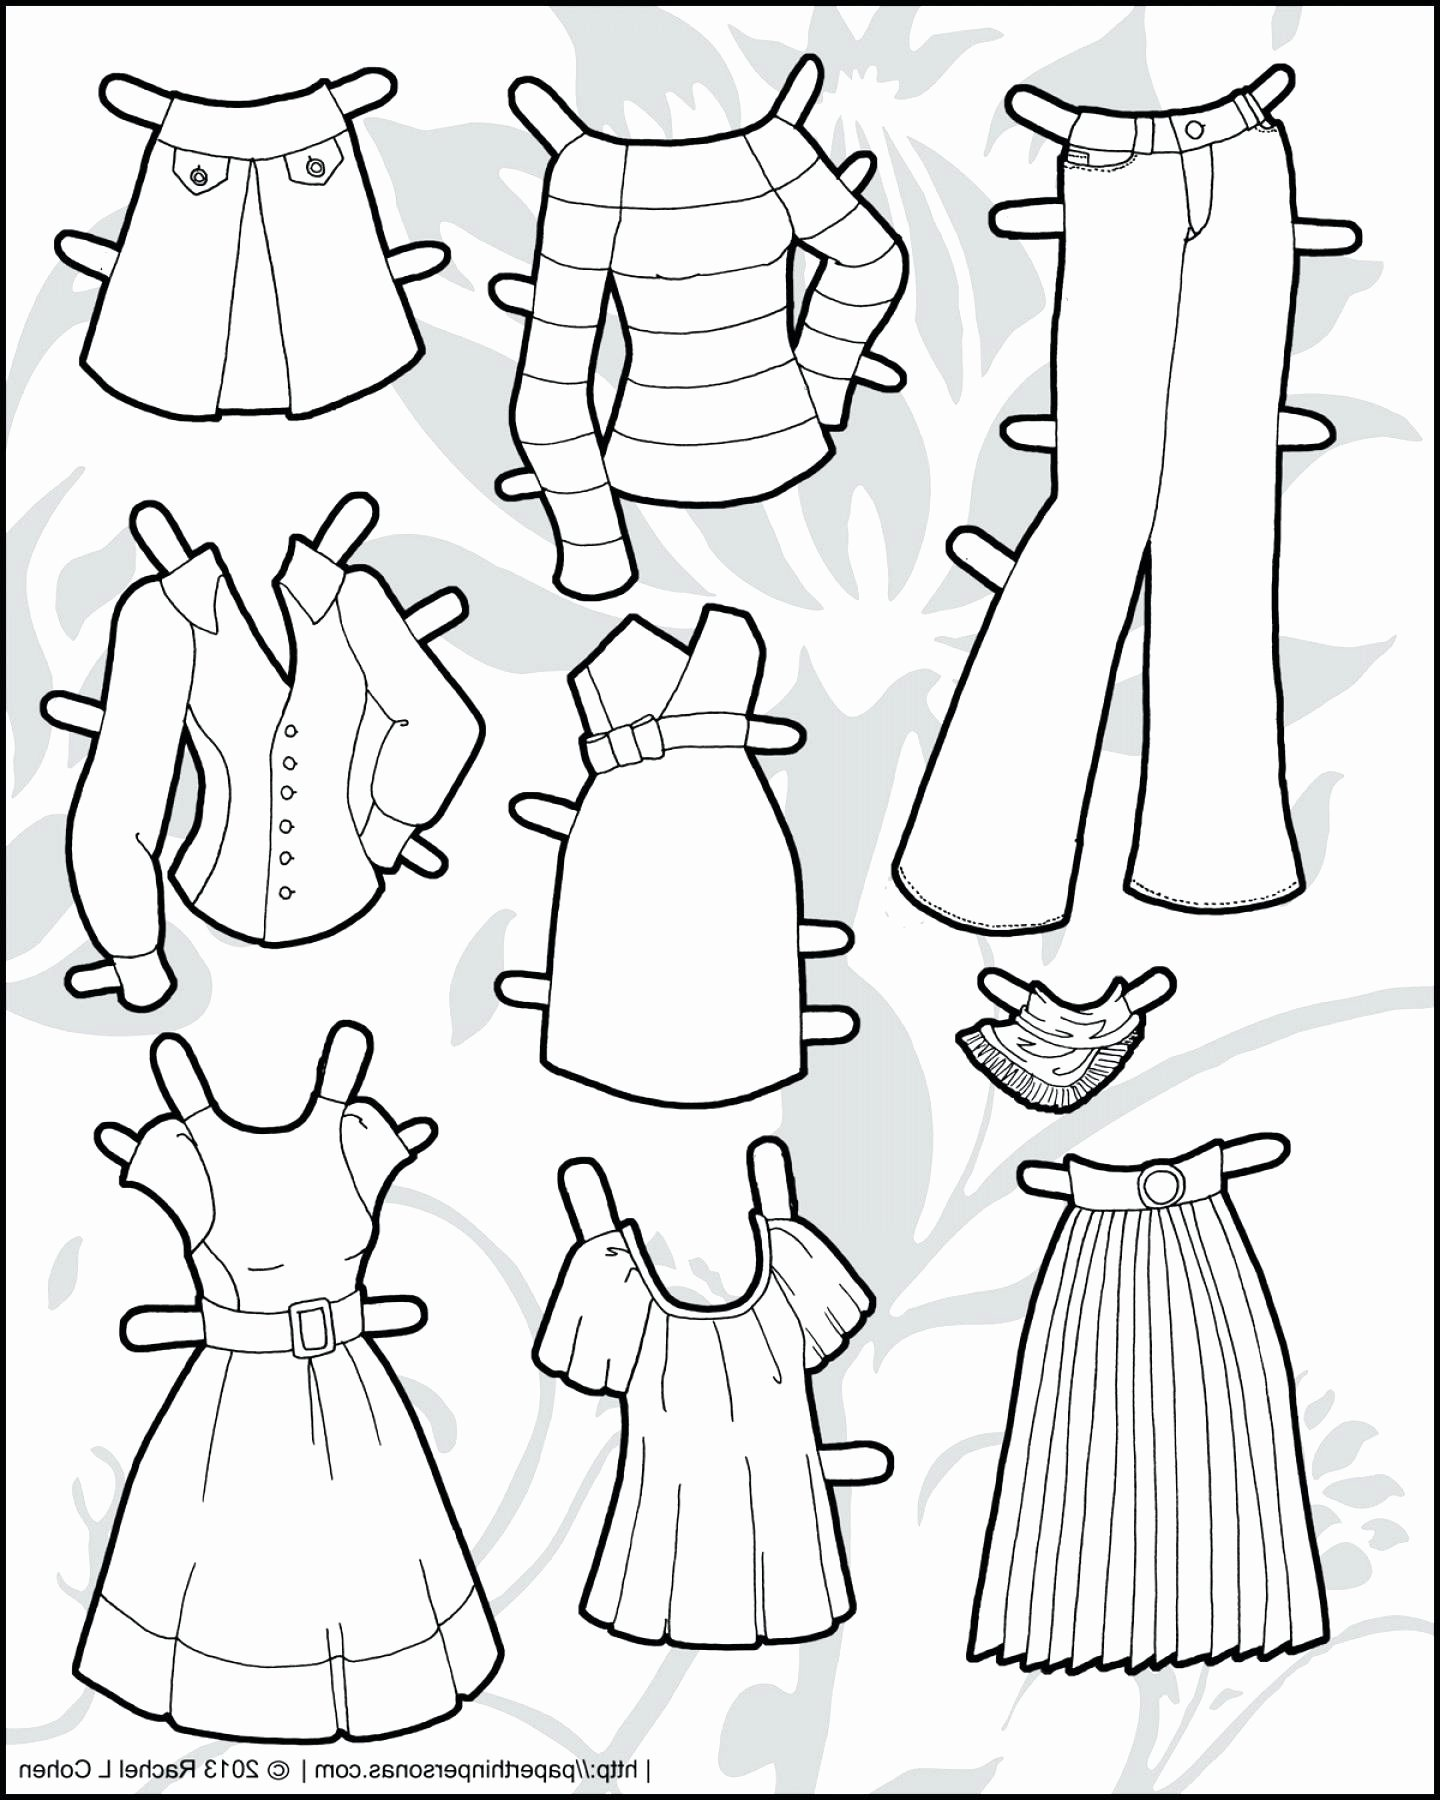 Paper Doll Clothing Template Best Of Printable Paper Doll Template